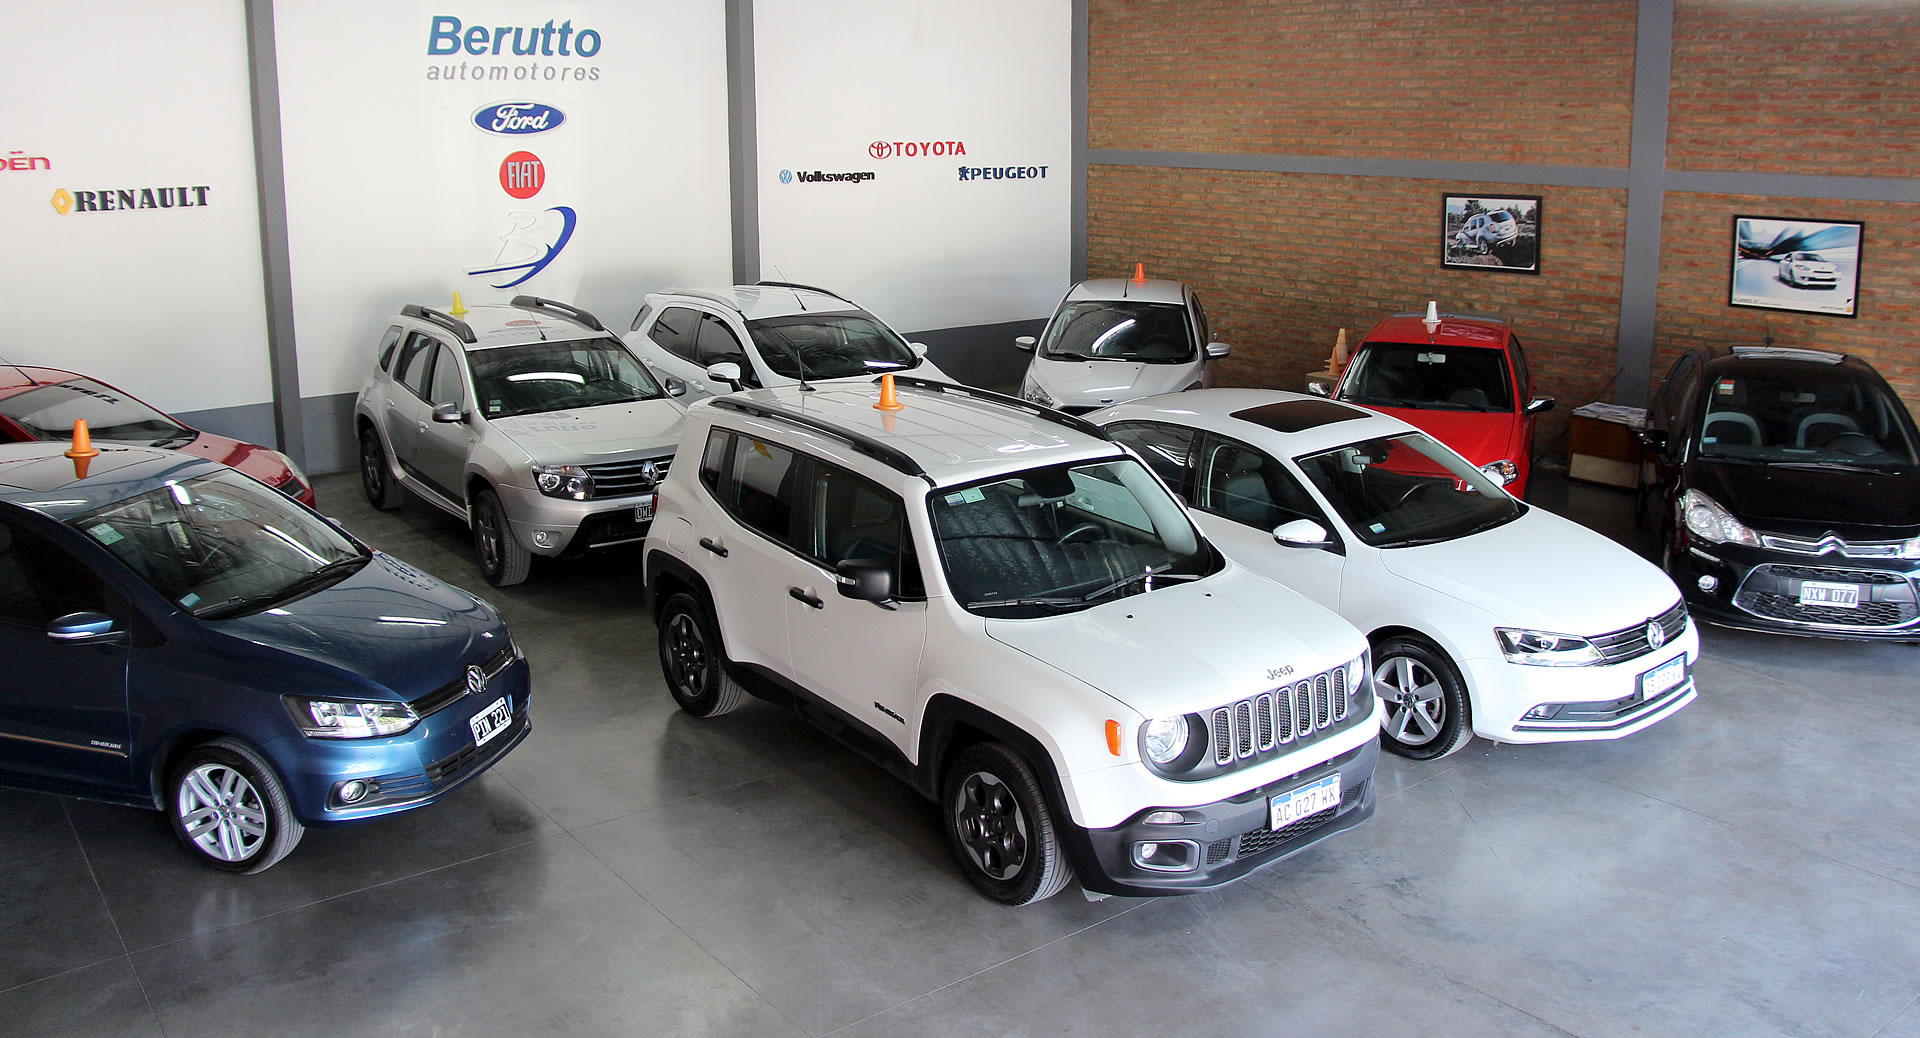 Berutto Automotores, foto del interior del local